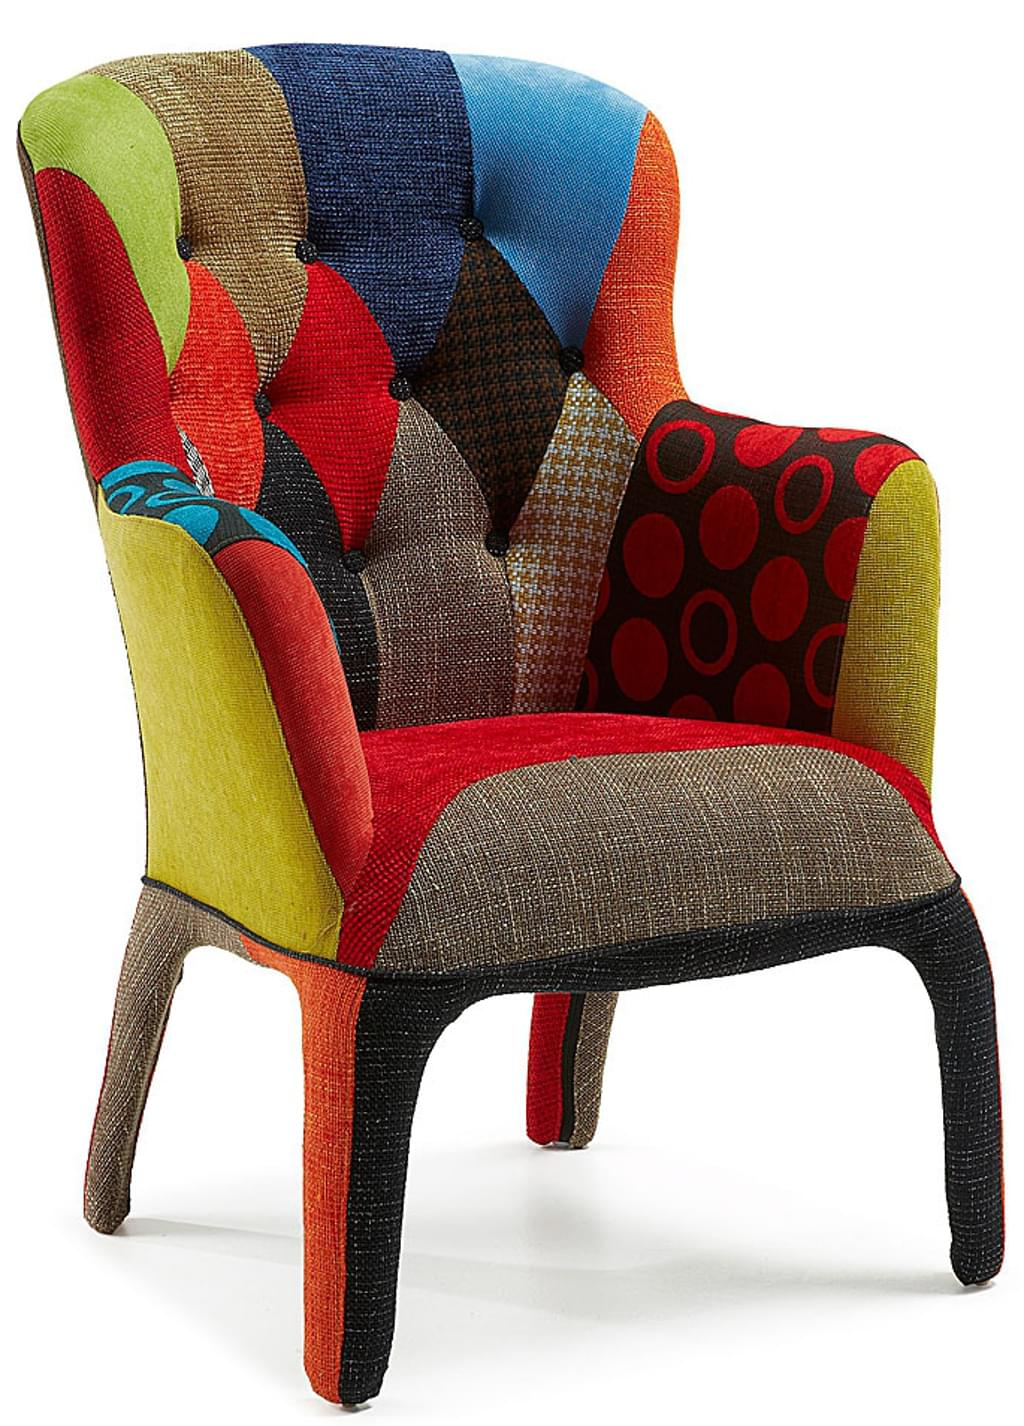 Fauteuil Coco Patchwork 24Designs.